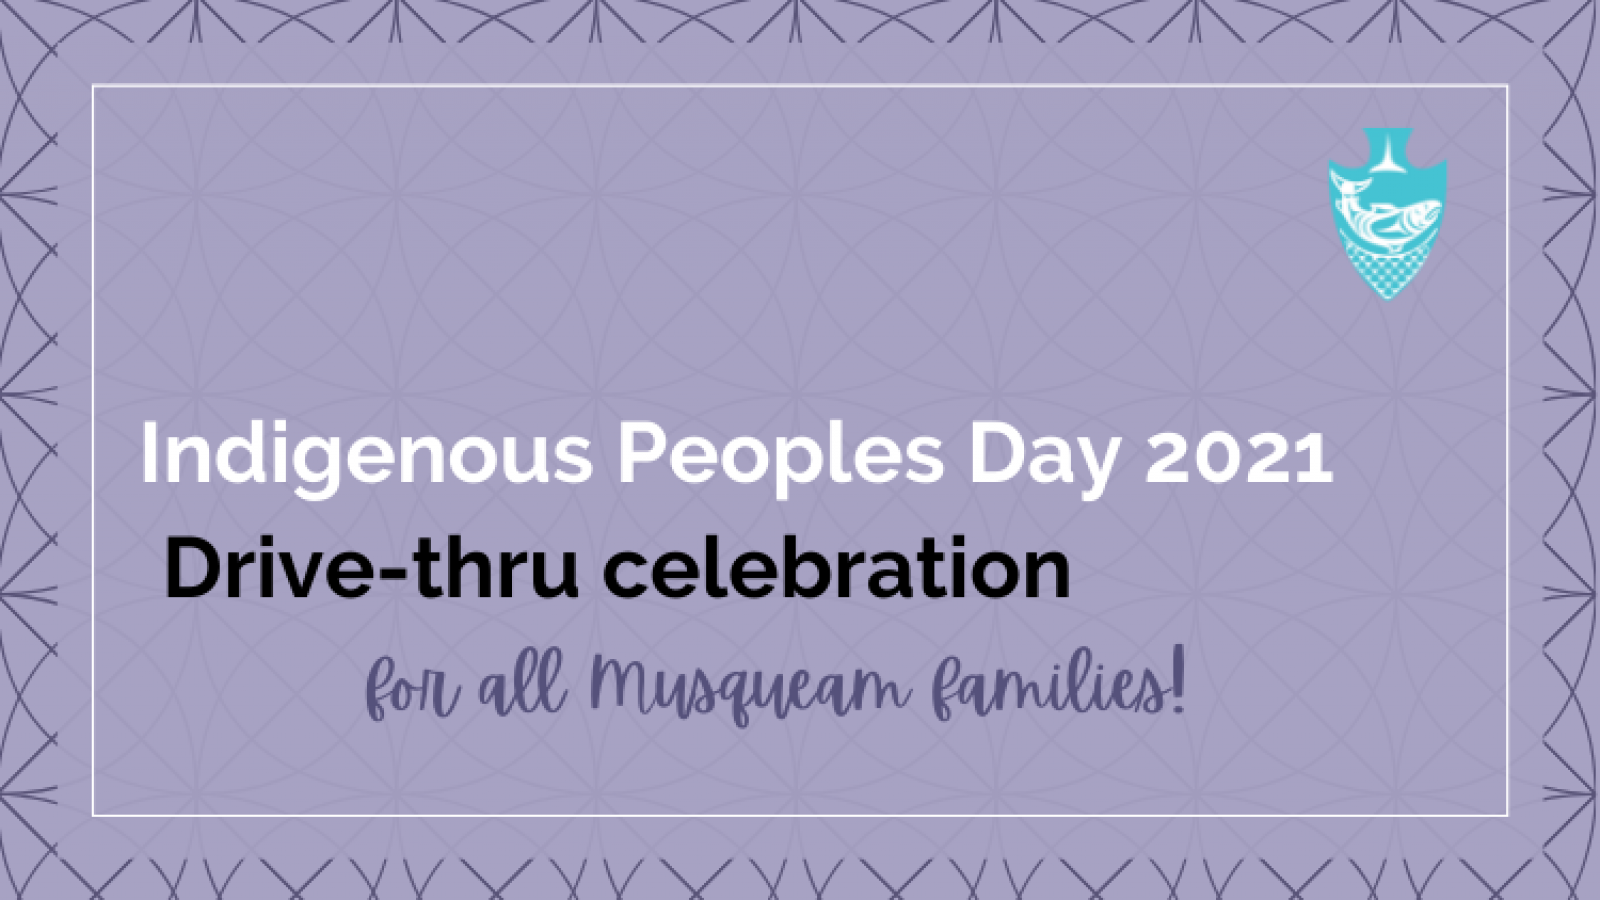 Indigenous Peoples Day 2021 Drive Thru Celebration at Musqueam